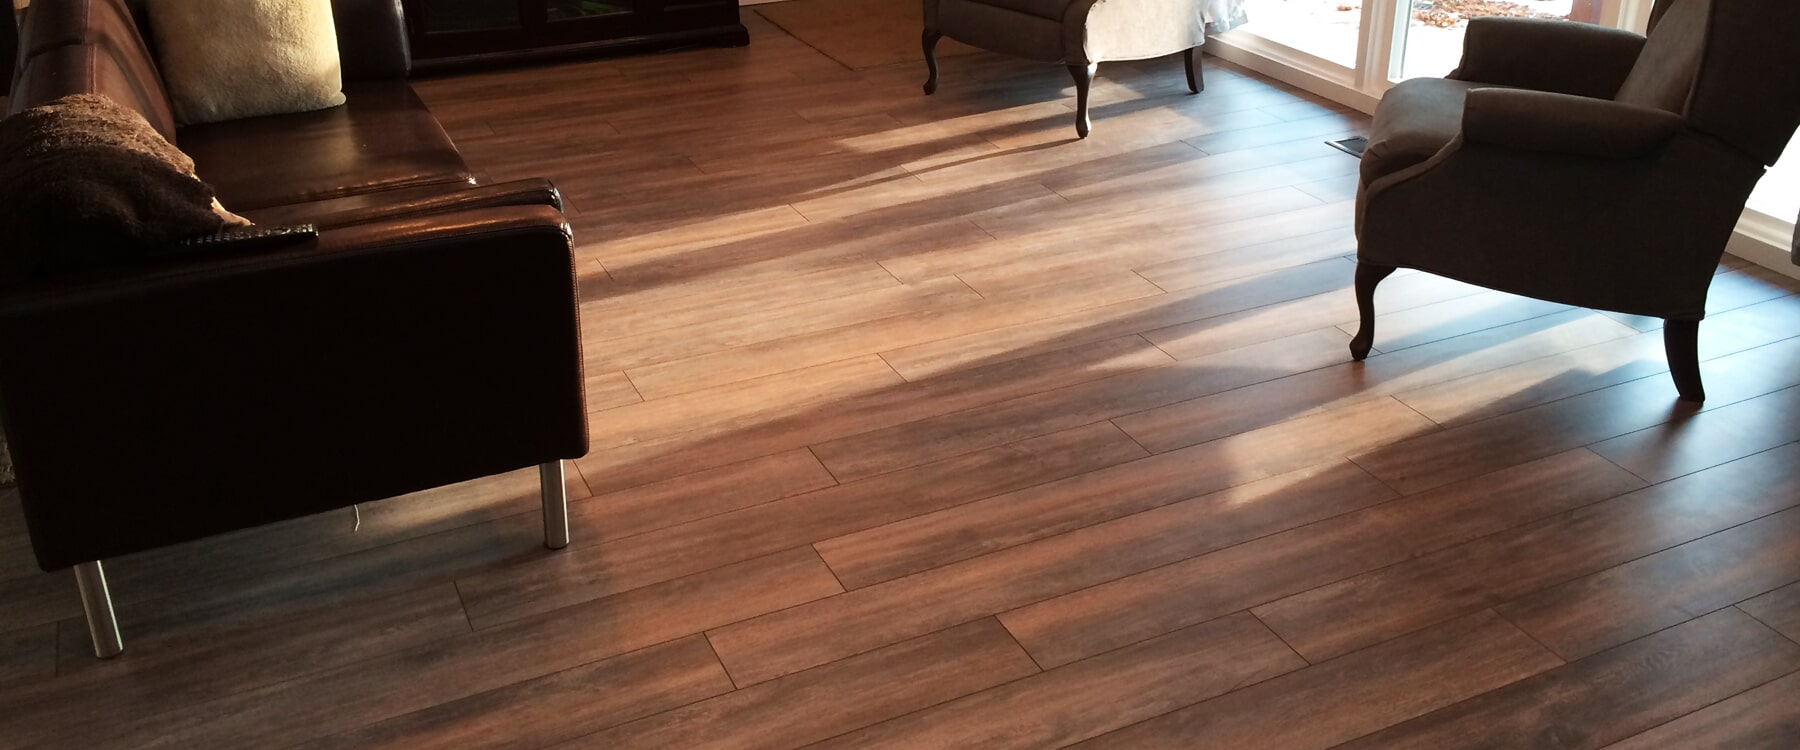 Wood floors from Schindler Carpet & Floors in the Dallas area